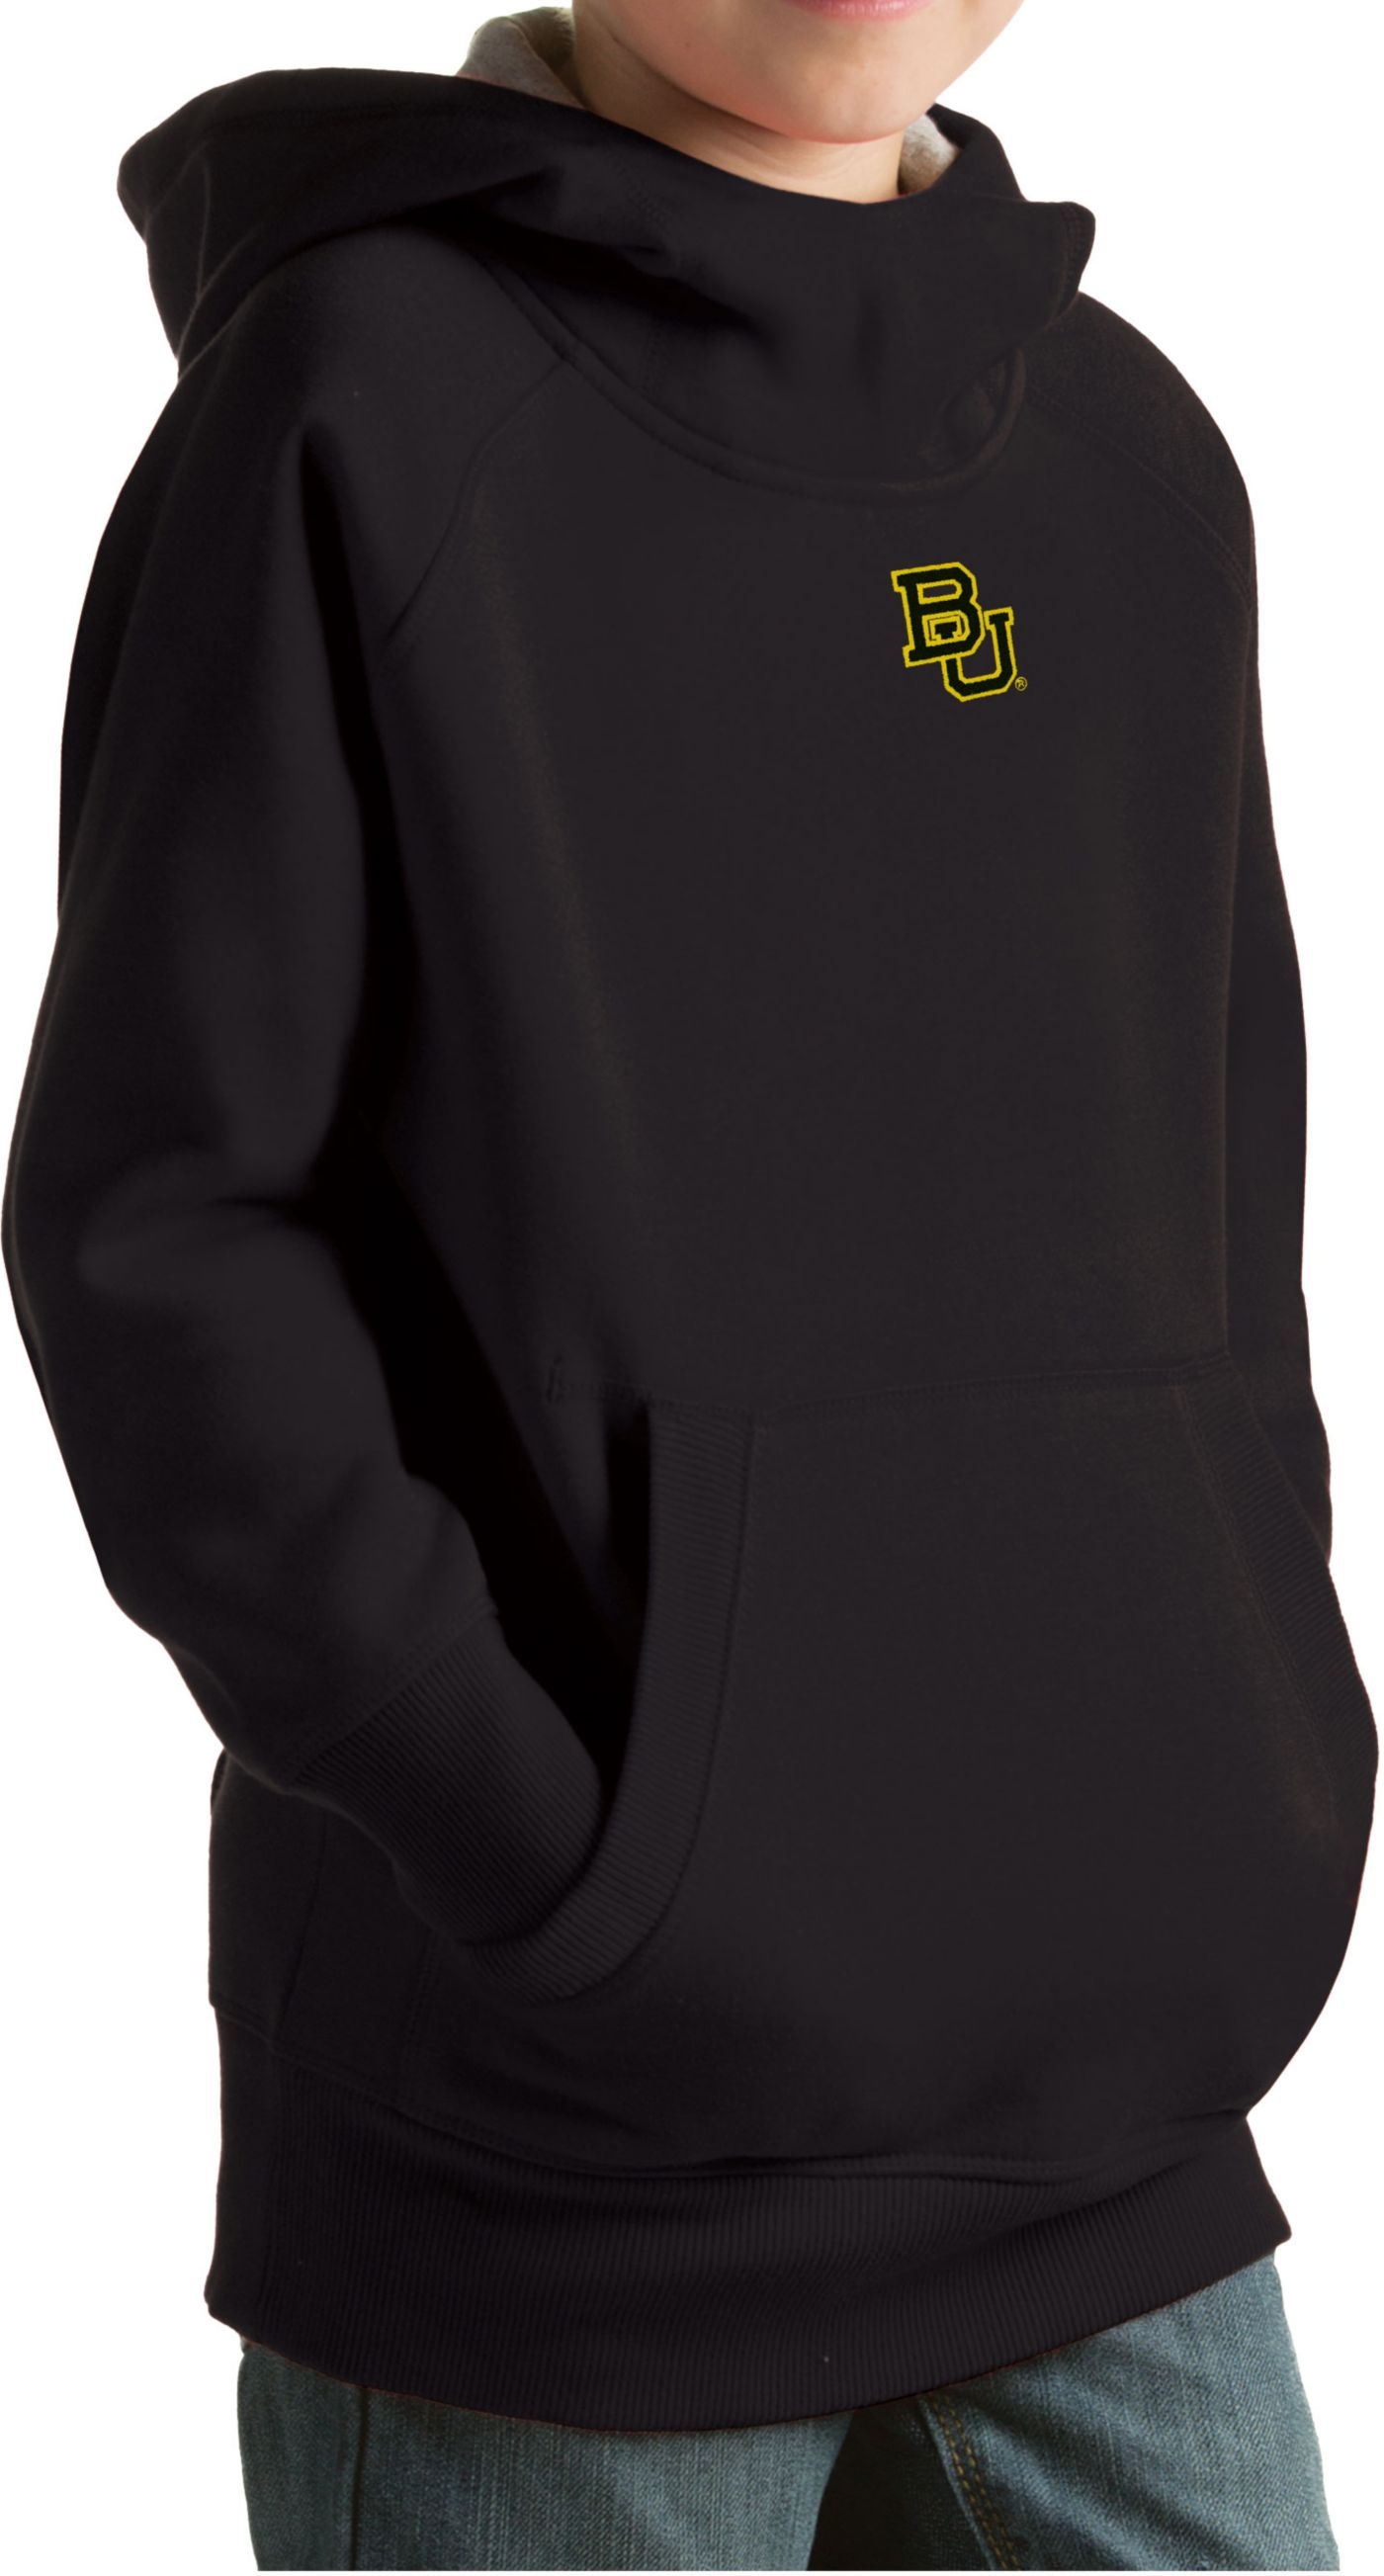 Antigua Youth Baylor Bears Black Victory Pullover Hoodie